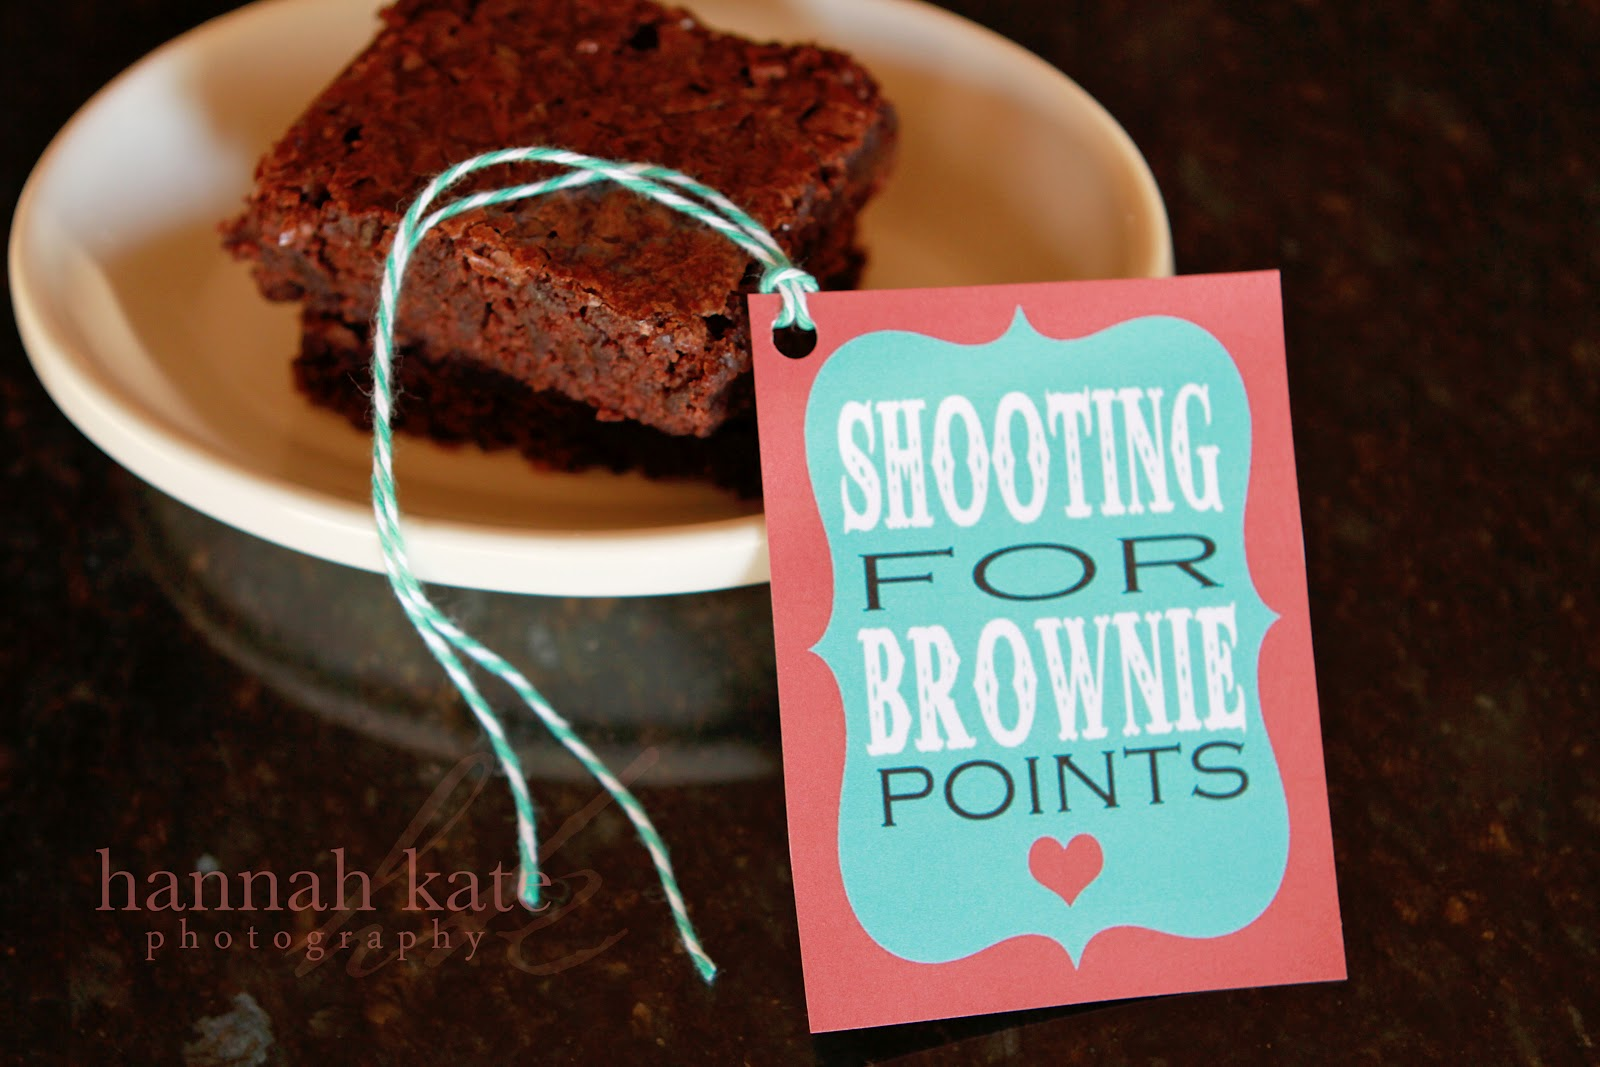 photo regarding Shooting for Brownie Points Free Printable referred to as The Gaines Gang: V.Working day Freebie Printables